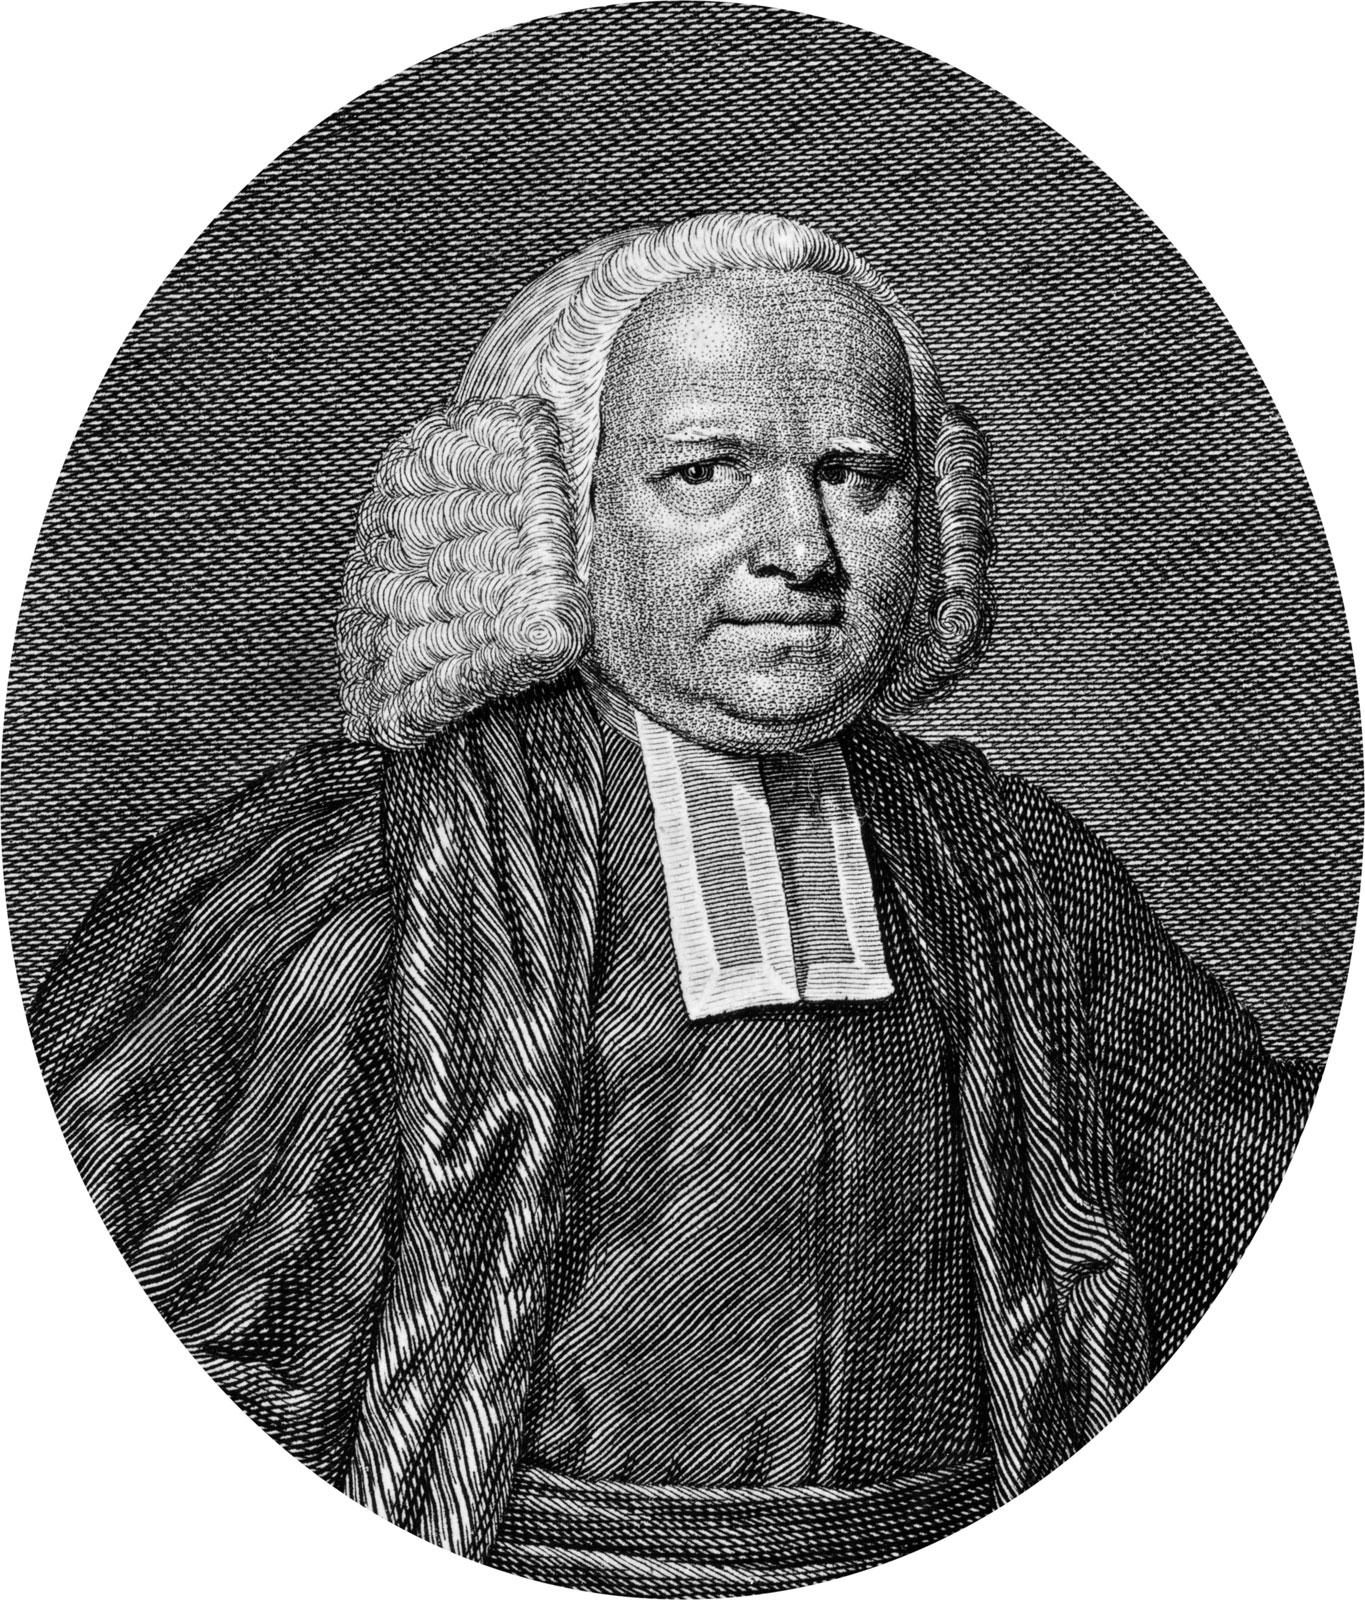 george whitefield The life of the reverend george whitefield luke tyerman quinta press tyerman volume 1 v1_tyermans whitefield volume 1 9 february 2010 12:55 page 1.